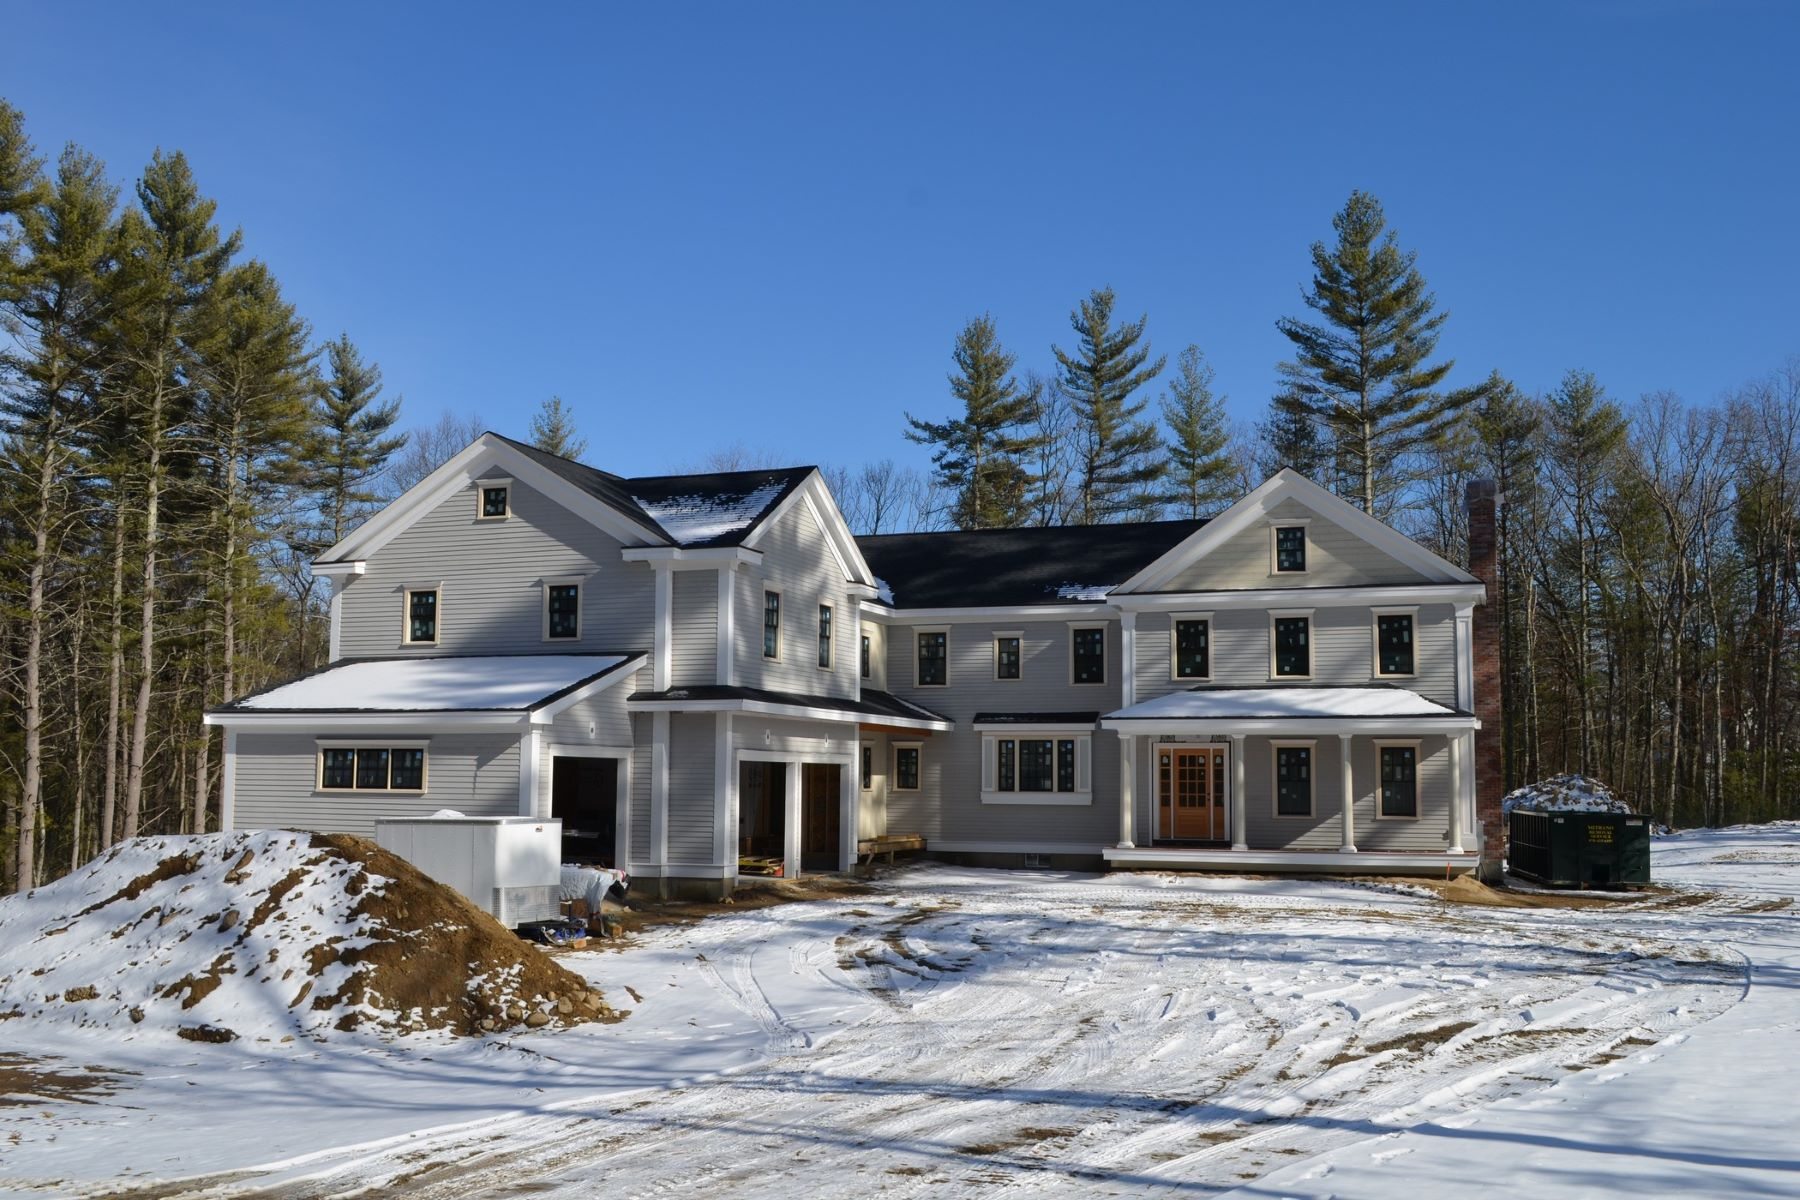 Casa Unifamiliar por un Venta en Greystone Crossing - New Construction 148 Greystone Lane Carlisle, Massachusetts 01741 Estados Unidos